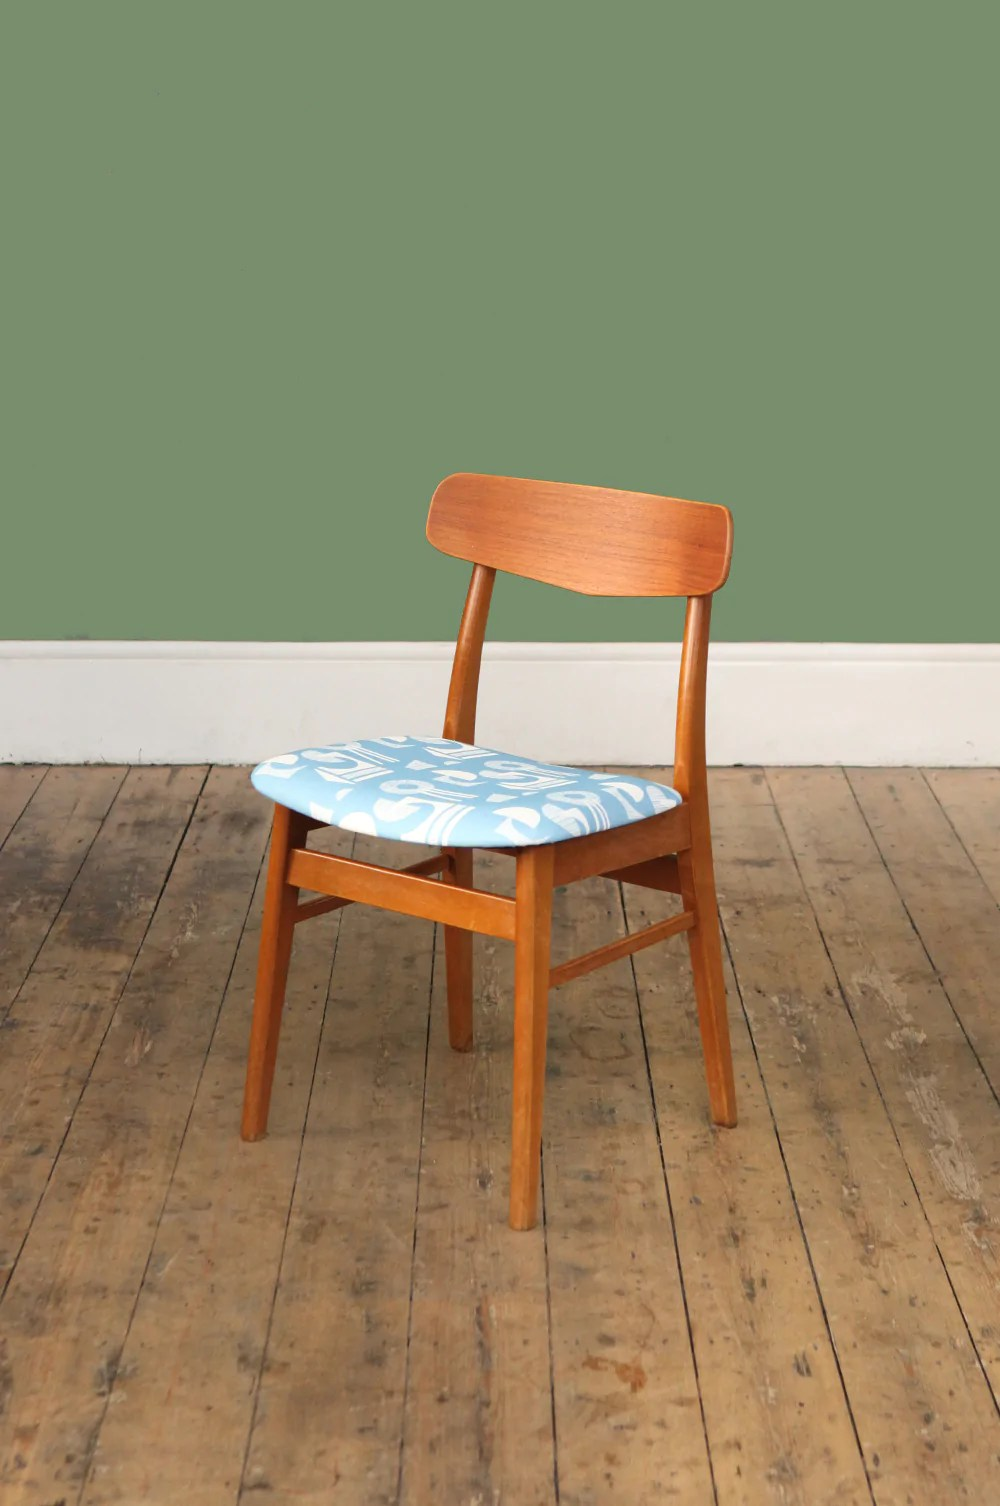 Blue Patterned Chair On Sale Teak Chair With Blue Patterned Seat Forest London